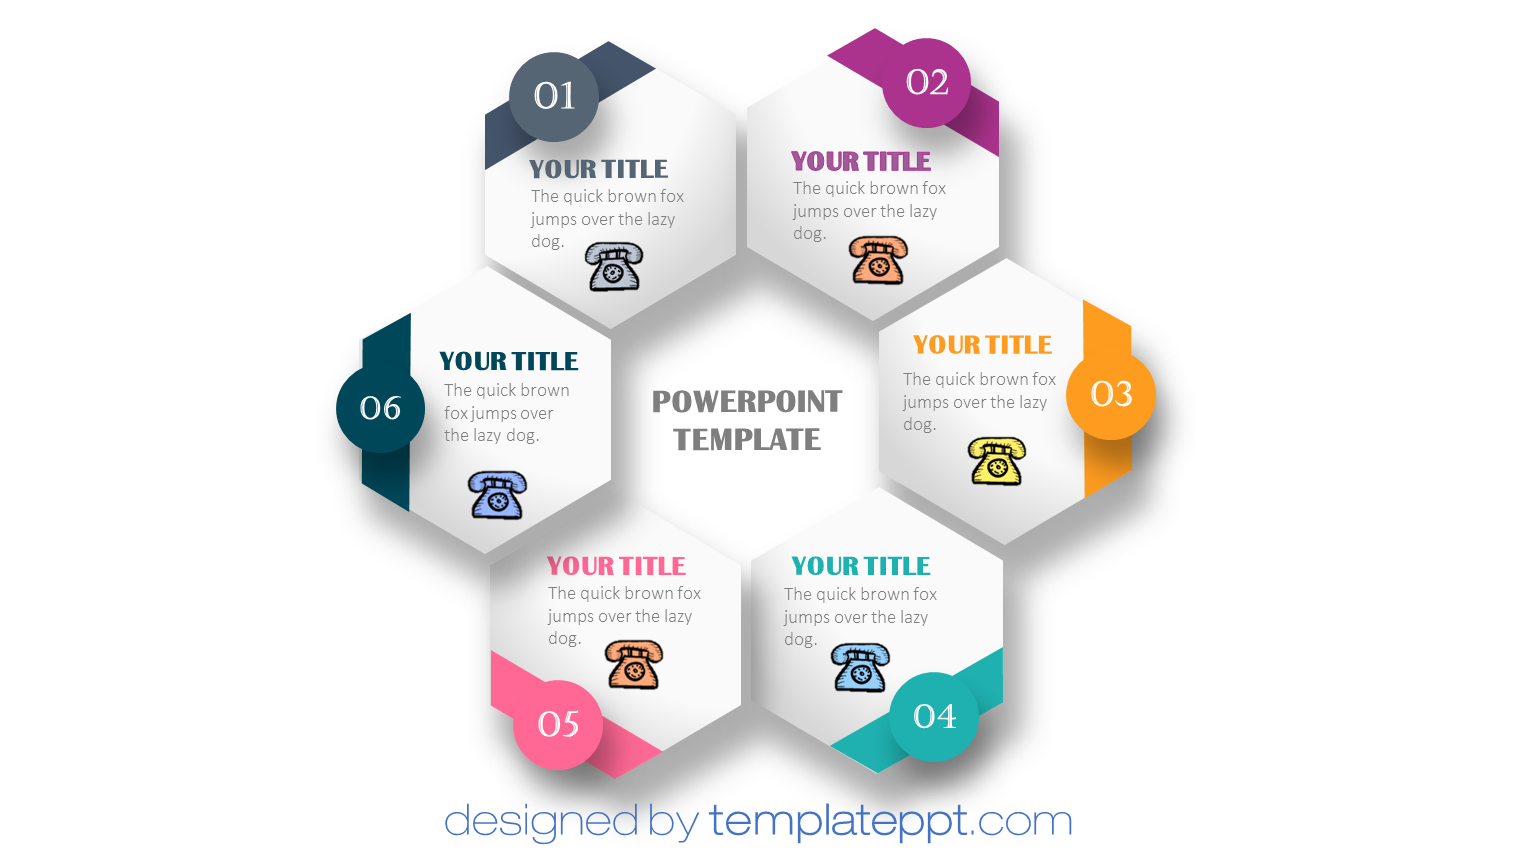 Best animated ppt templates free download download pinterest best animated ppt templates free download toneelgroepblik Gallery